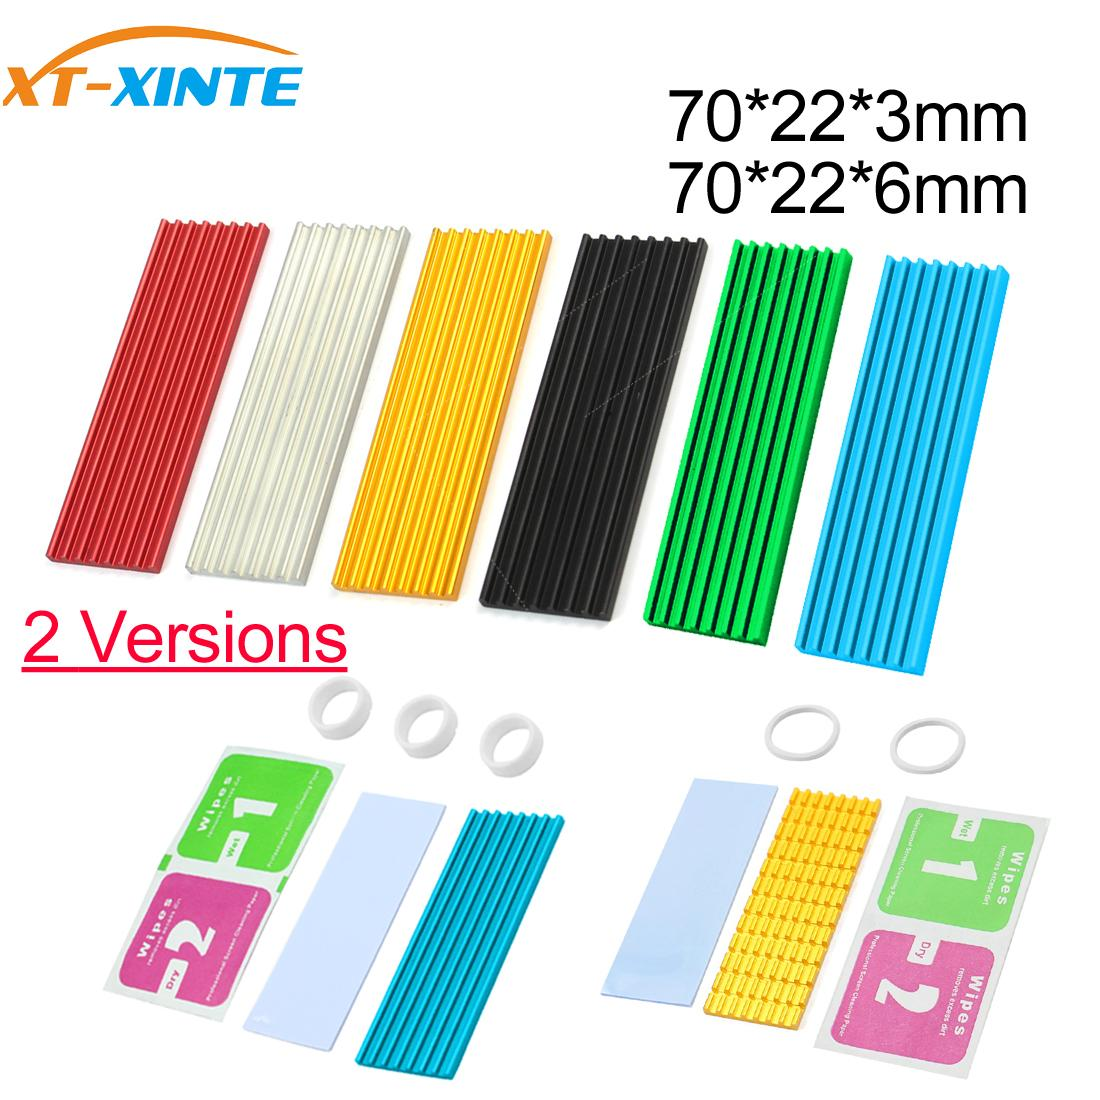 Aluminum Cooling Heat Sink Thermal Pads Heat Dissipation Radiator Thickness 3mm 6mm for M.2 NGFF SATA PCI E NVME m2 SSD Heatsink Fans & Cooling  - AliExpress